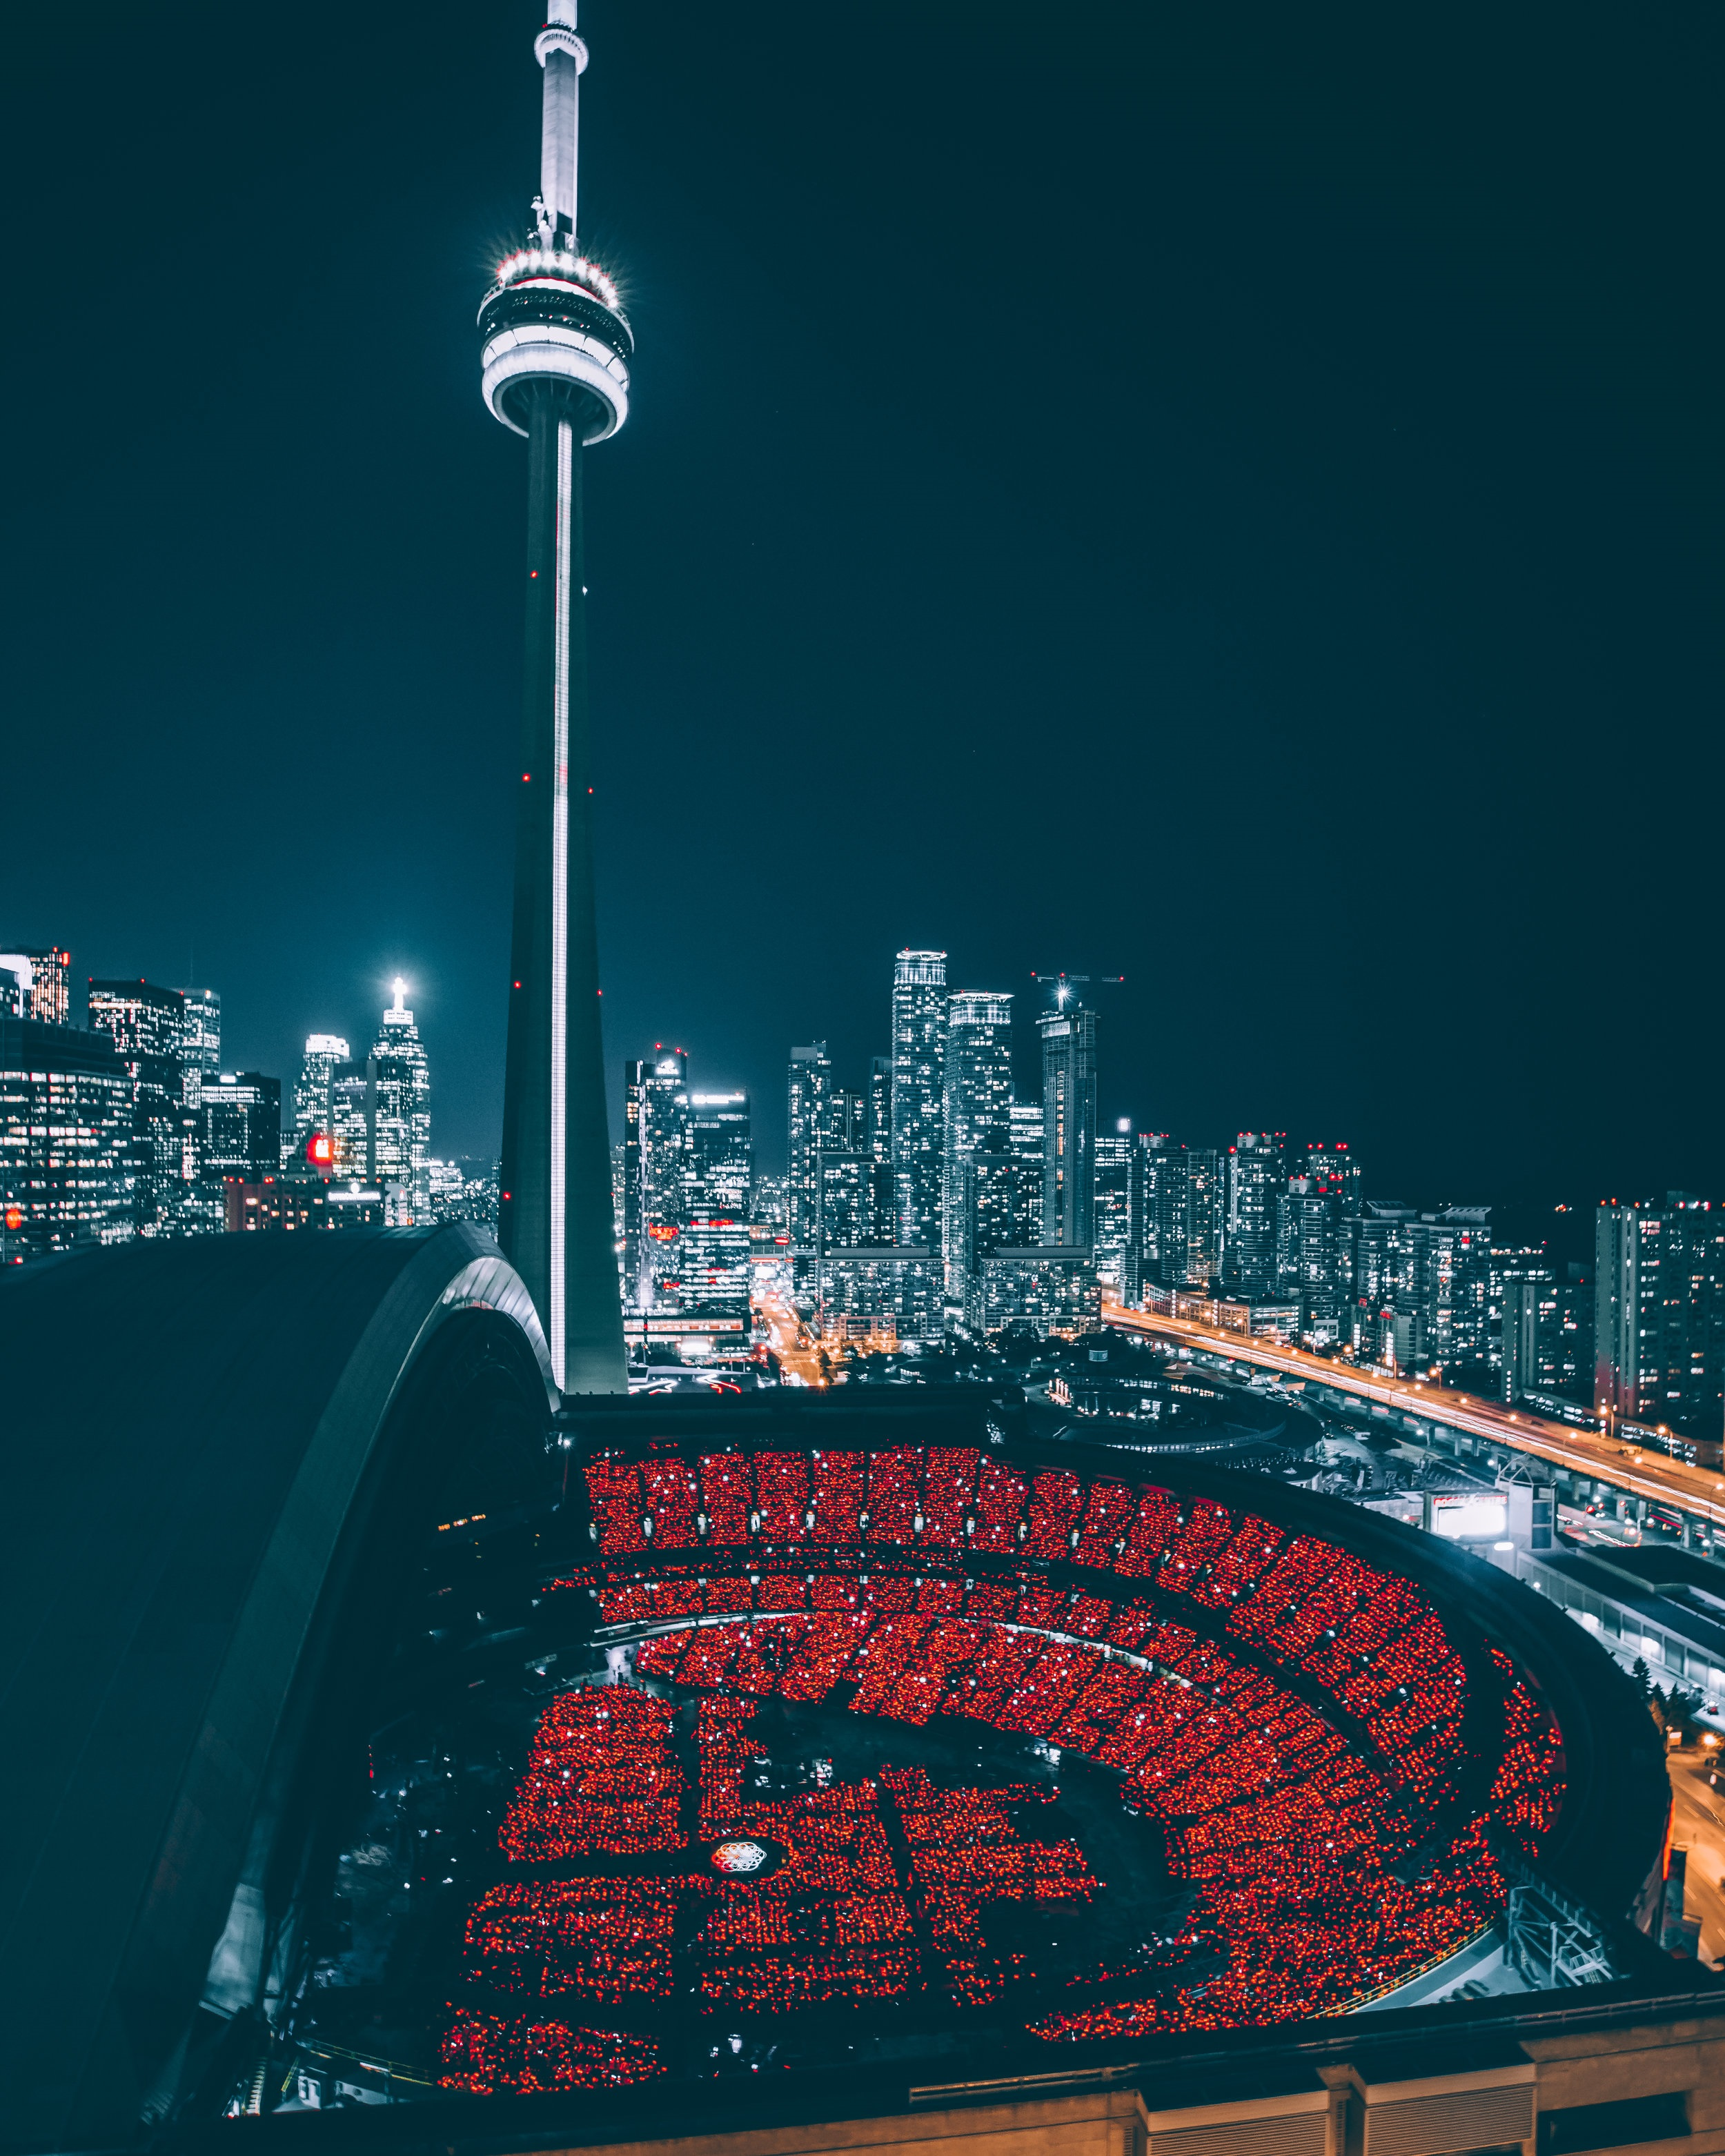 Clients benefit from our buying power and ability to plan and deliver across Canada from Halifax to Vancouver.We help you navigate the Canadian market to ensure you are getting the most effective and efficient media buy. -